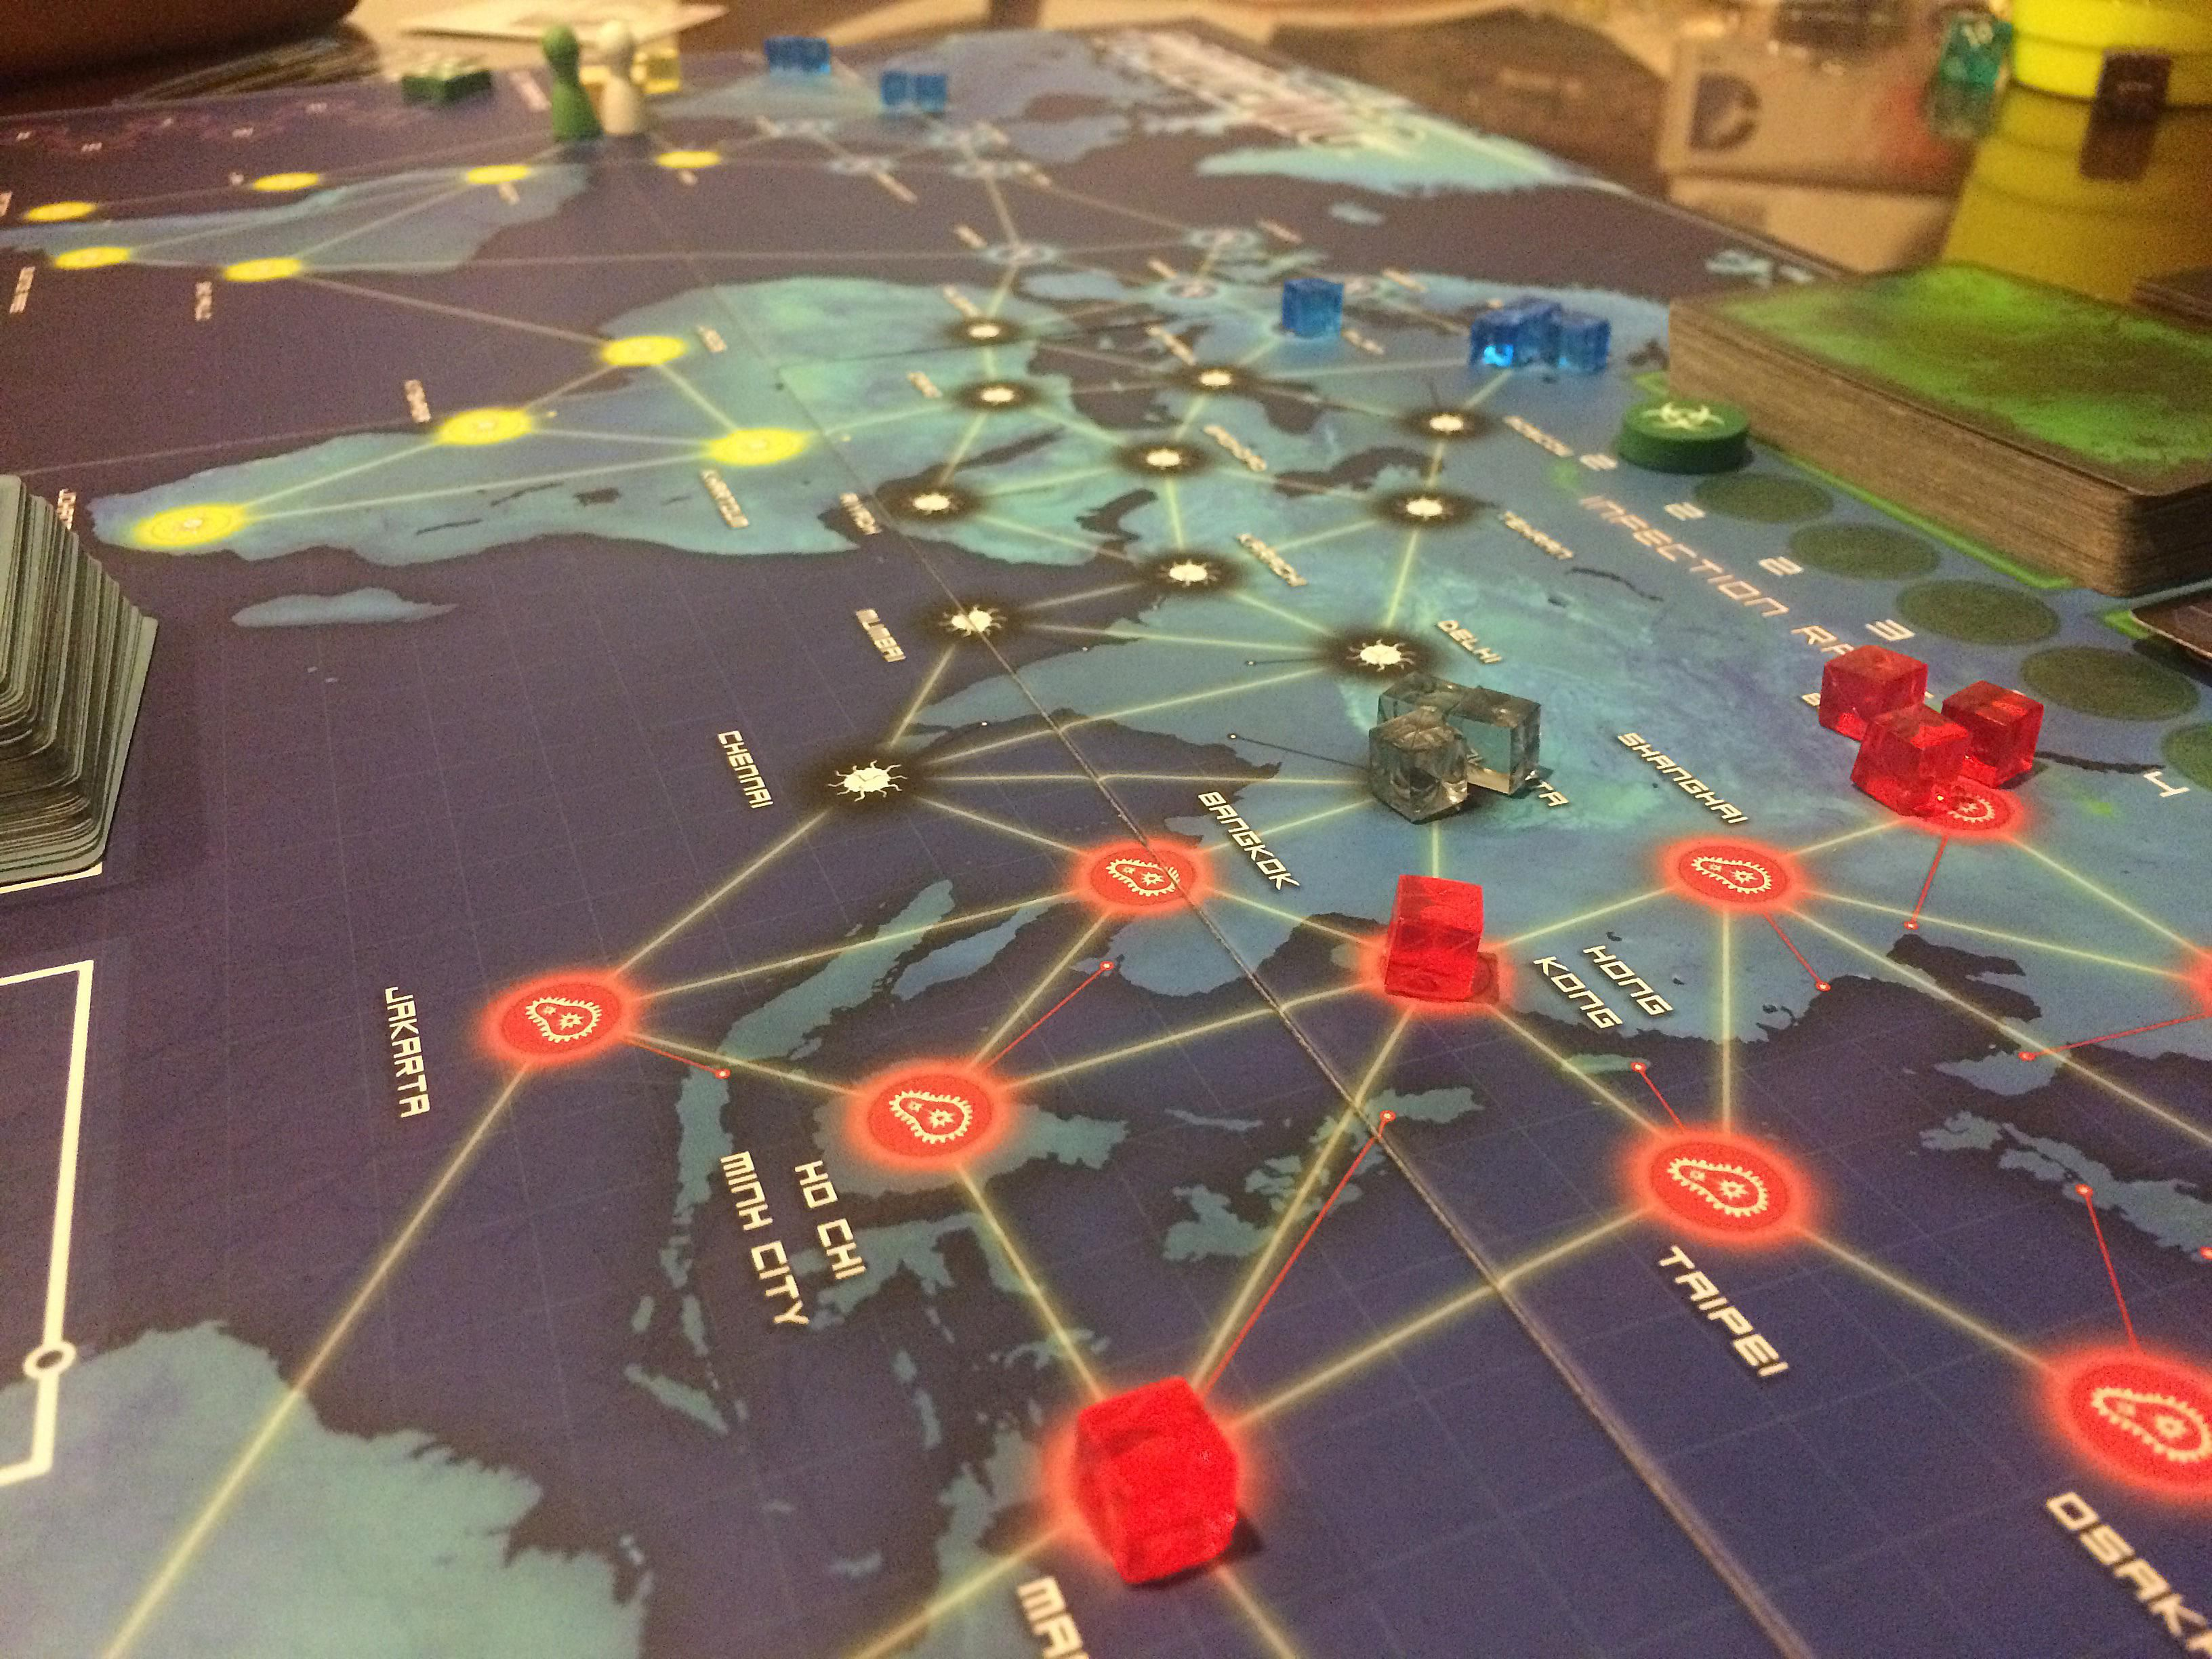 How to Avoid Outbreaks in the Pandemic Board Game